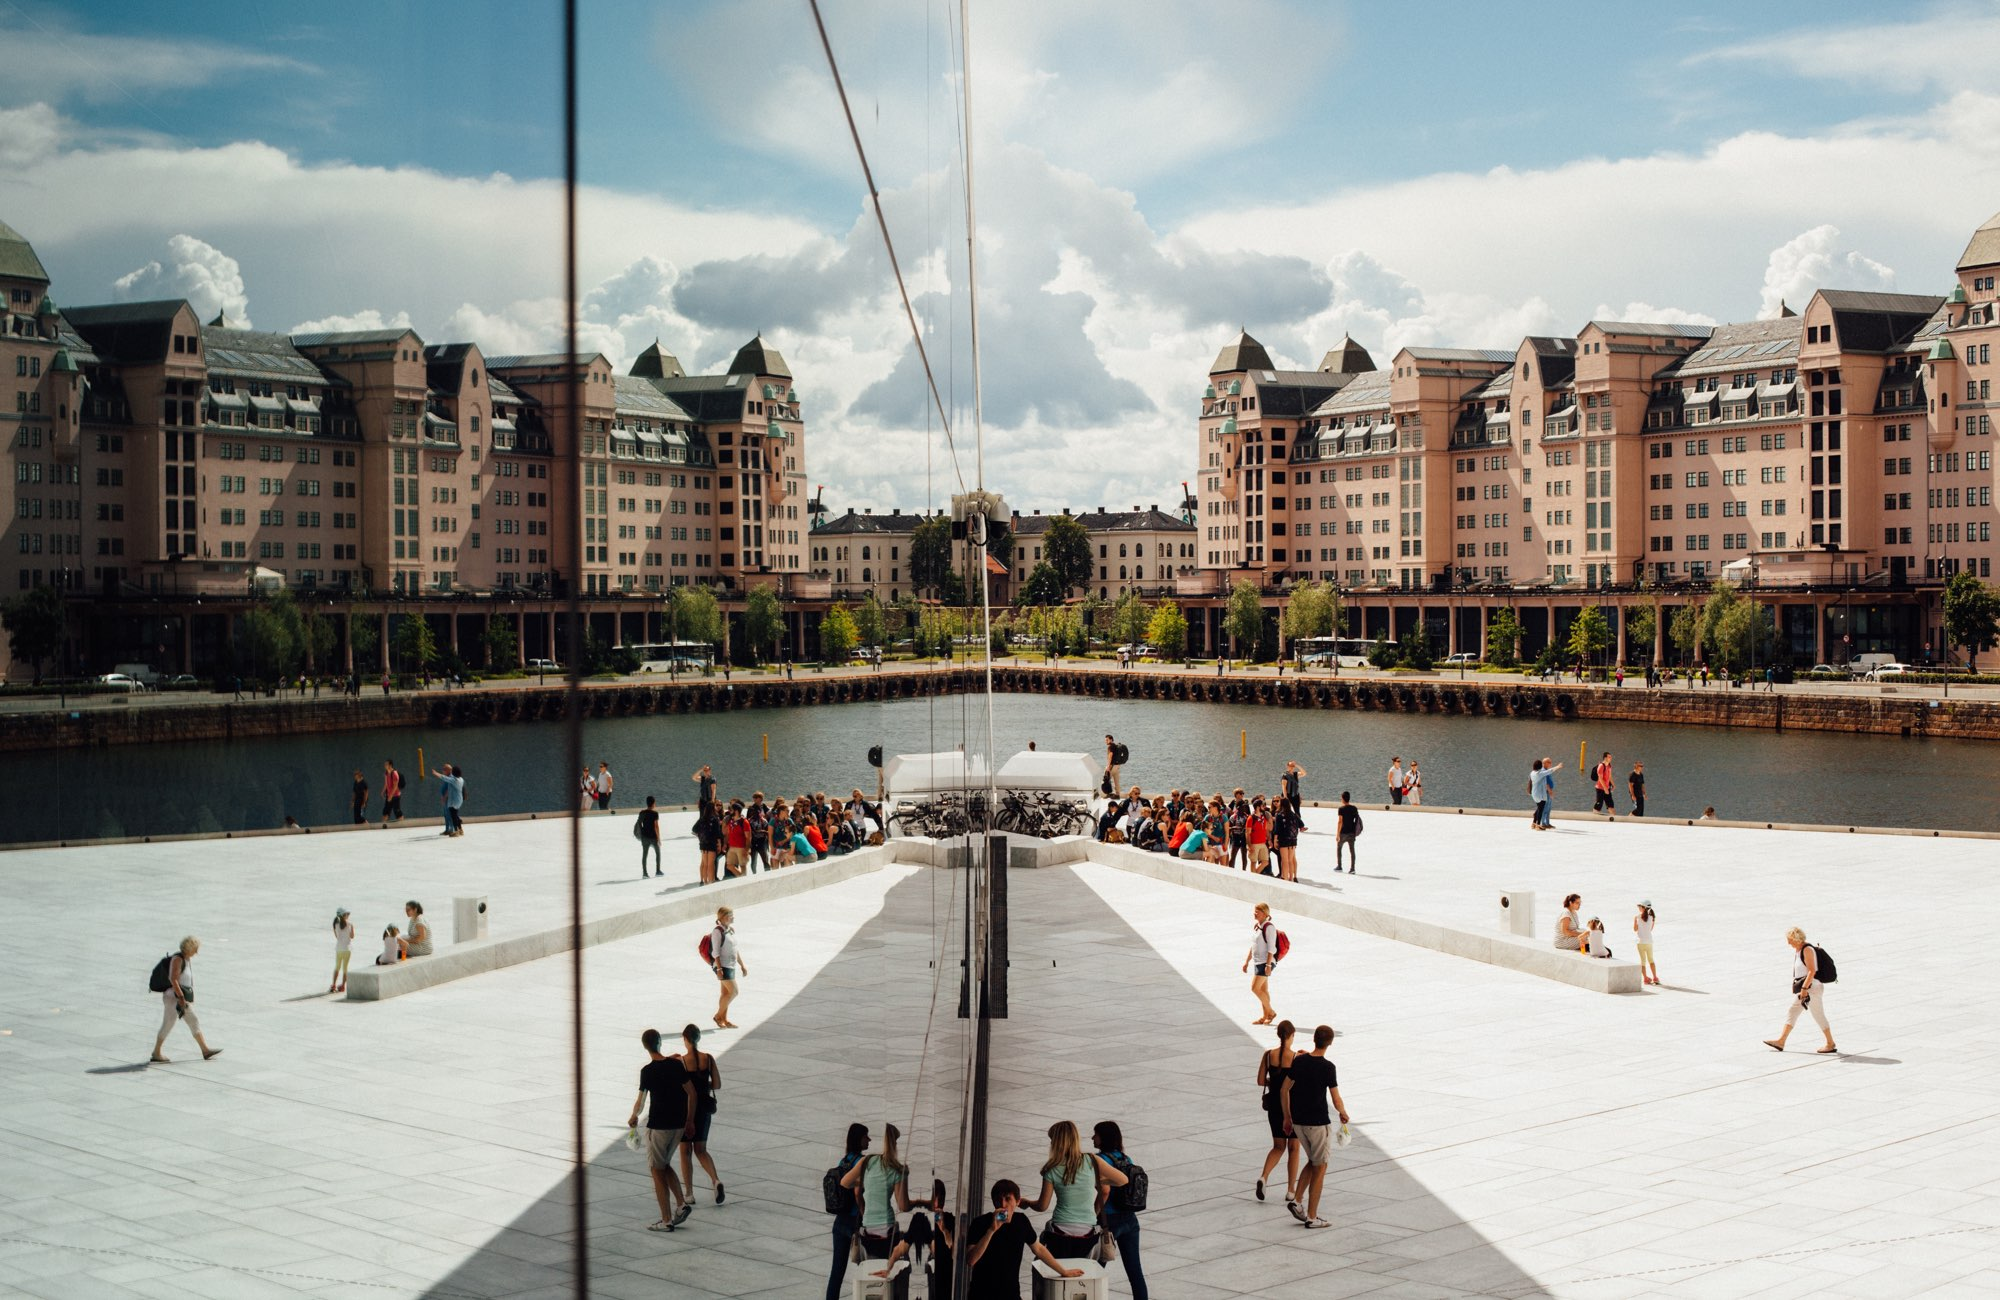 Exabel's guide to everyday living in Oslo